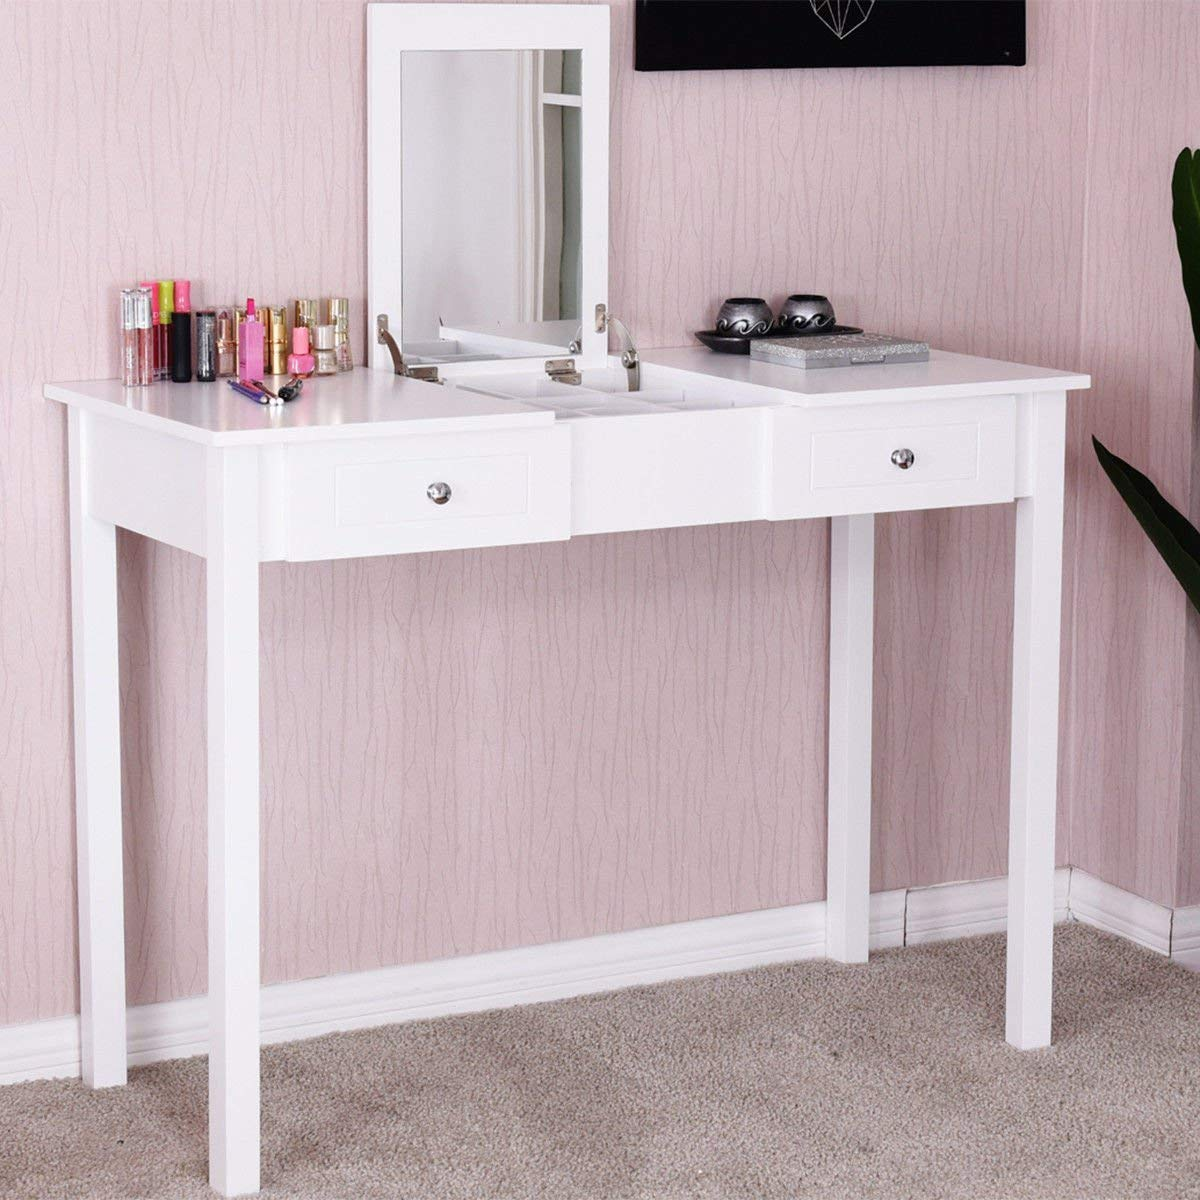 Giantex Vanity Table with Flip Top Mirror with 2 Drawers 1 Removable Organizer Dressing Table Vanity Table, White by Giantex (Image #2)